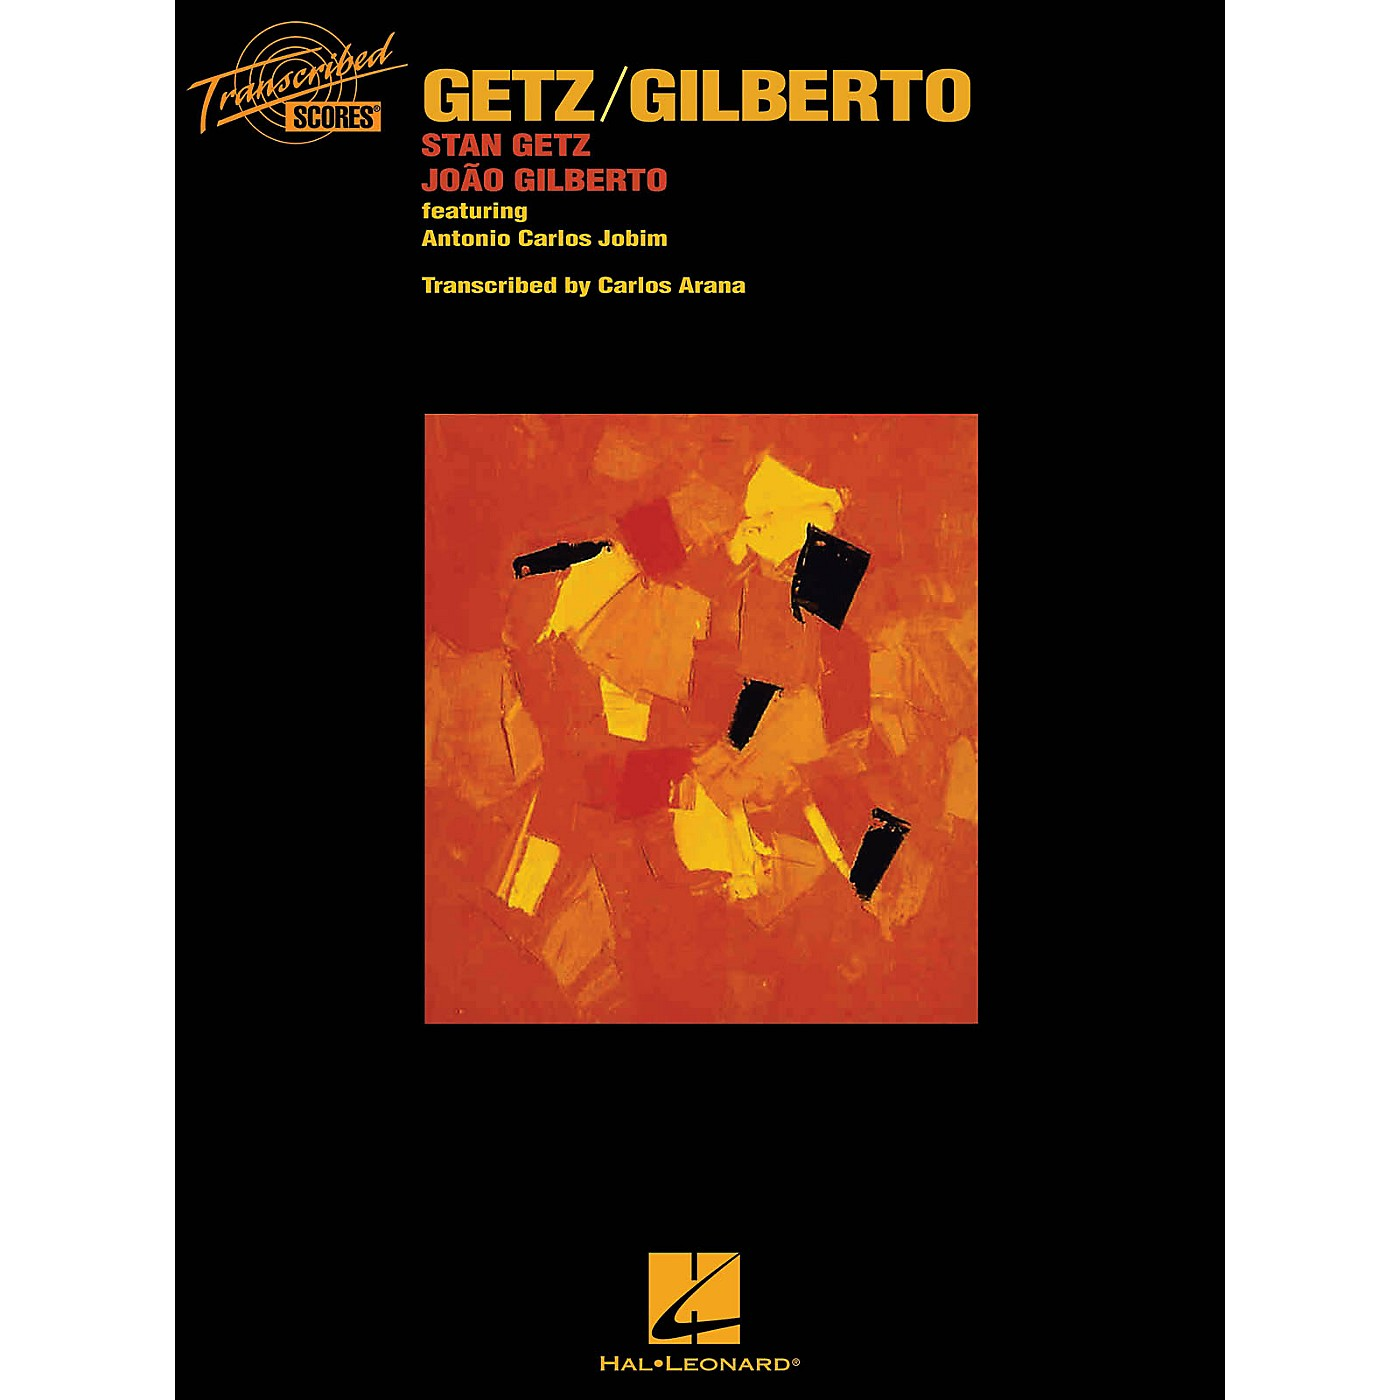 Hal Leonard Getz/Gilberto Transcribed Score Series Softcover Performed by Stan Getz thumbnail